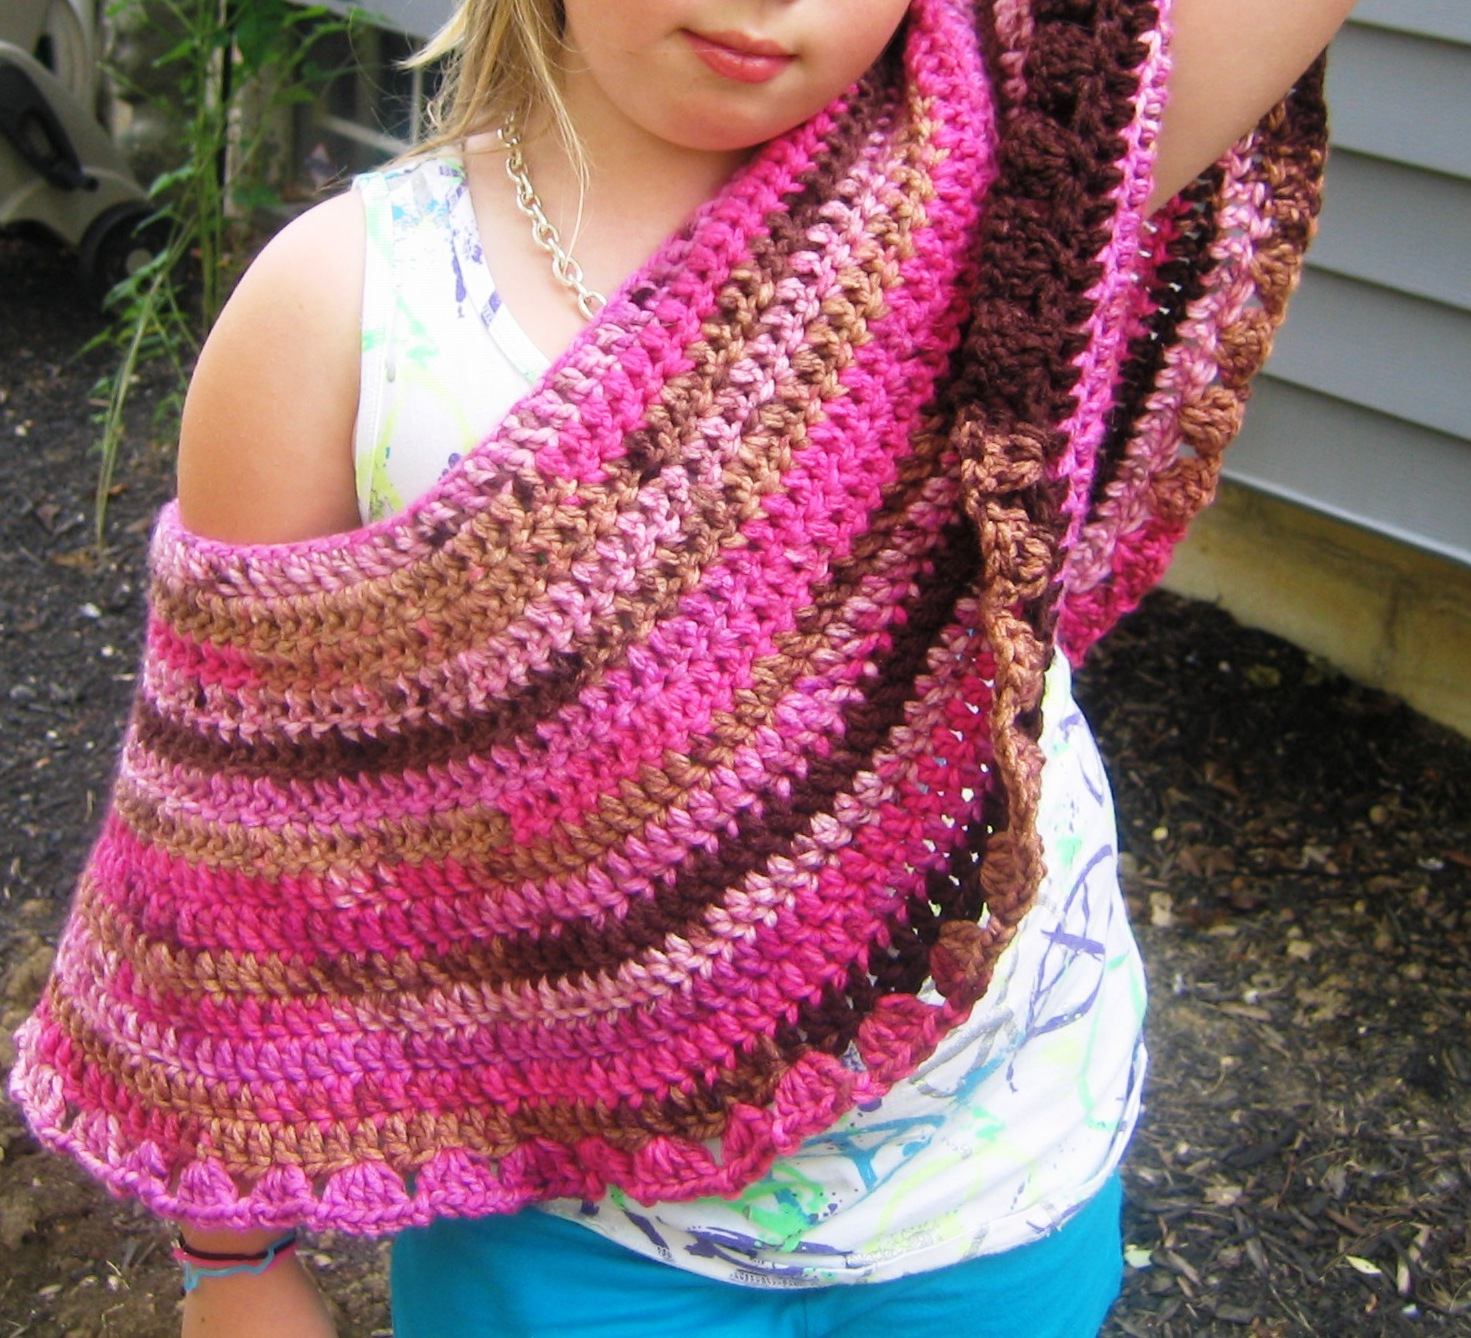 Crocheting Ponchos : ... By Annabelle: How to Crochet a Childs Poncho - 8 Quick and Easy Steps